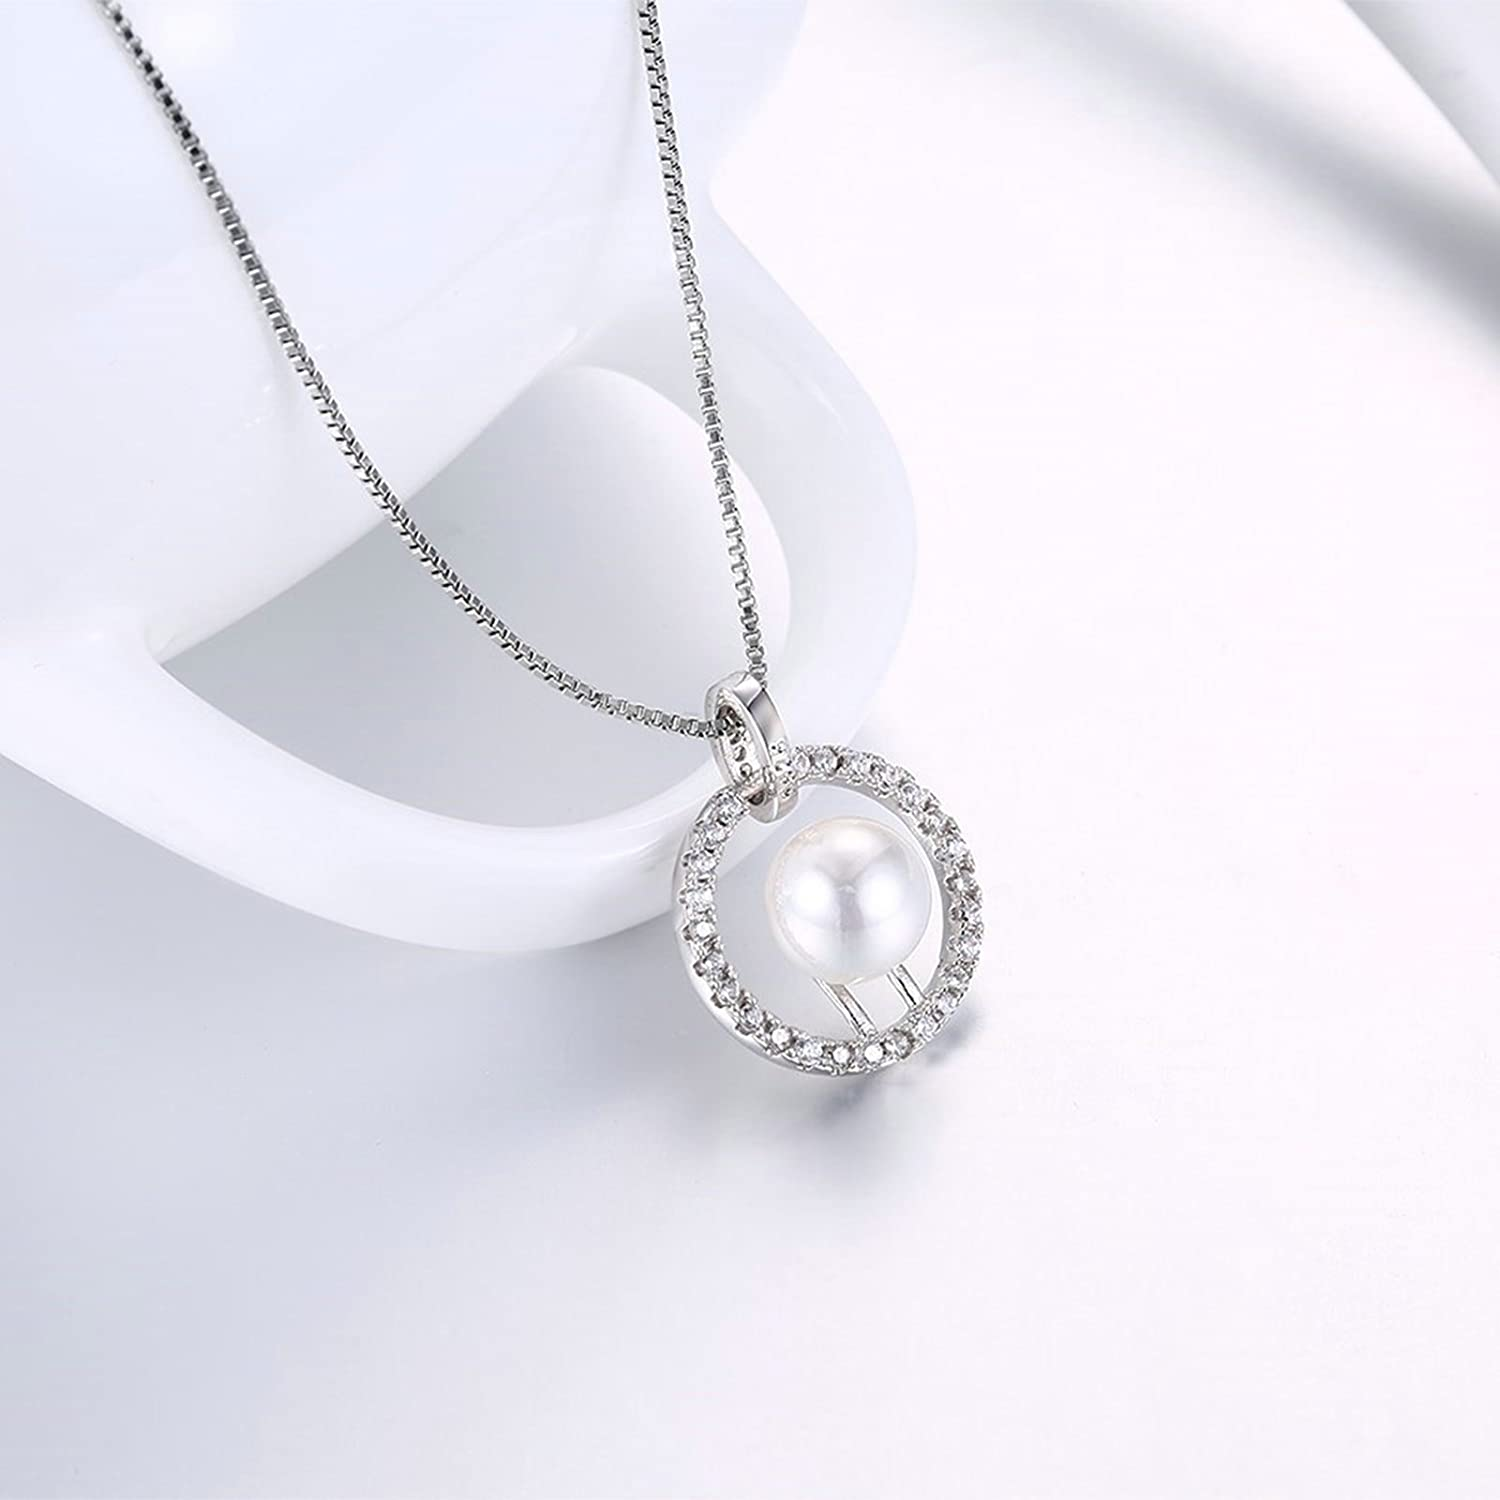 Gnzoe Jewelry Women Stainless Steel Necklace Round Shape Pendant with Pearl White Women Chain 45+5CM